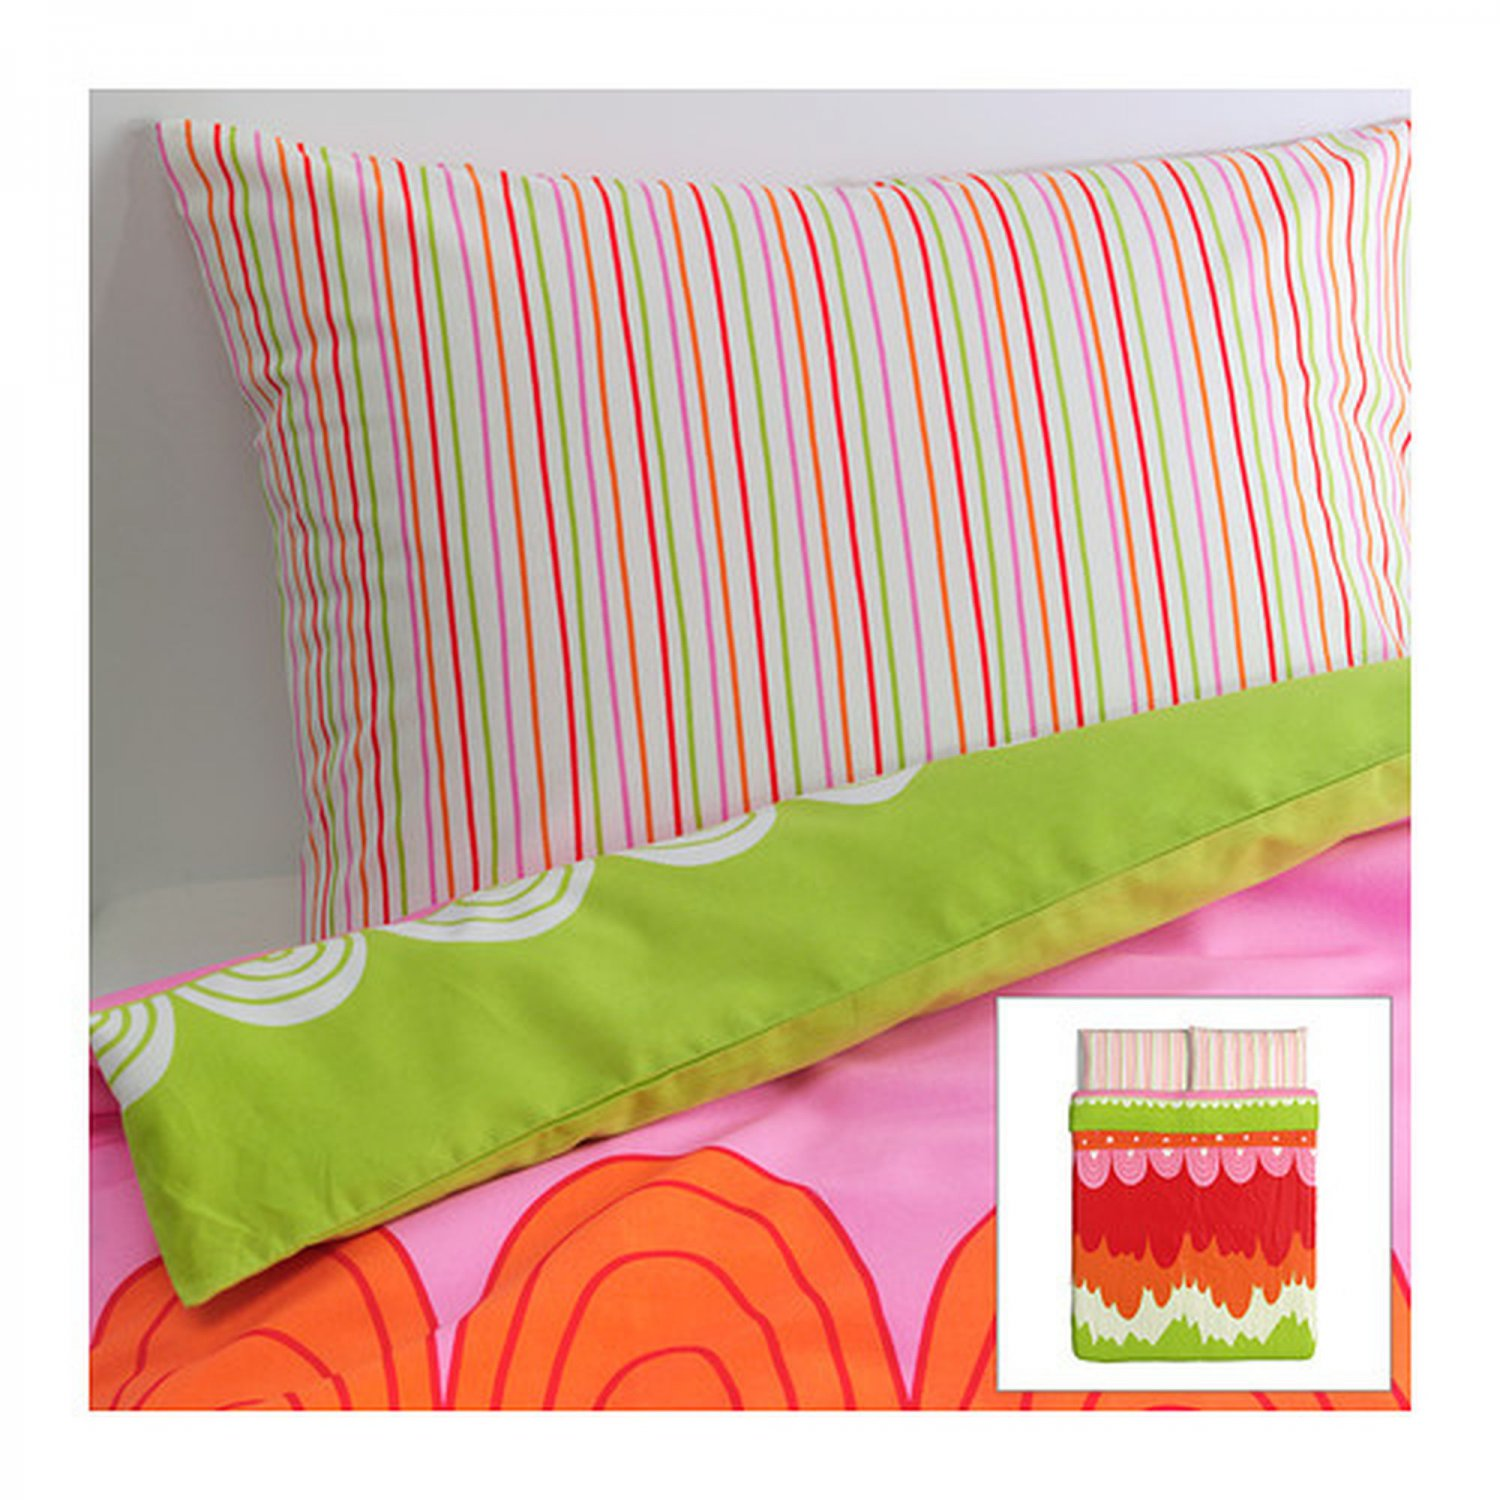 IKEA �NGSKRASSE QUEEN Full Double Duvet COVER Pillowcases Set Multicolor Angskrasse